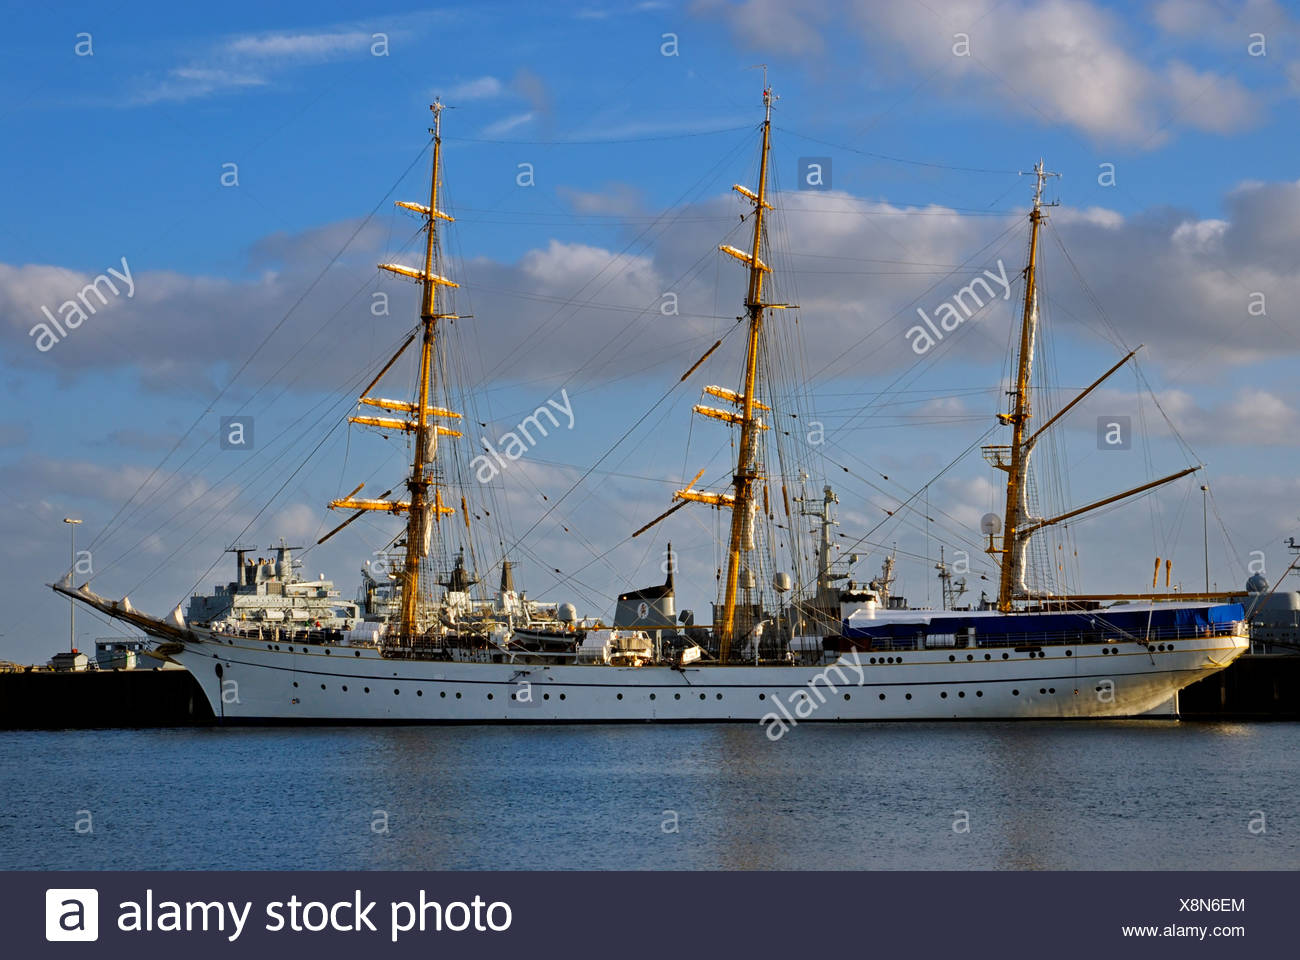 Tall Ship from the German navy, Gorch Fock in the harbour, Kiel Week 2008, Kiel, Schleswig-Holstein, Germany, Europe - Stock Image